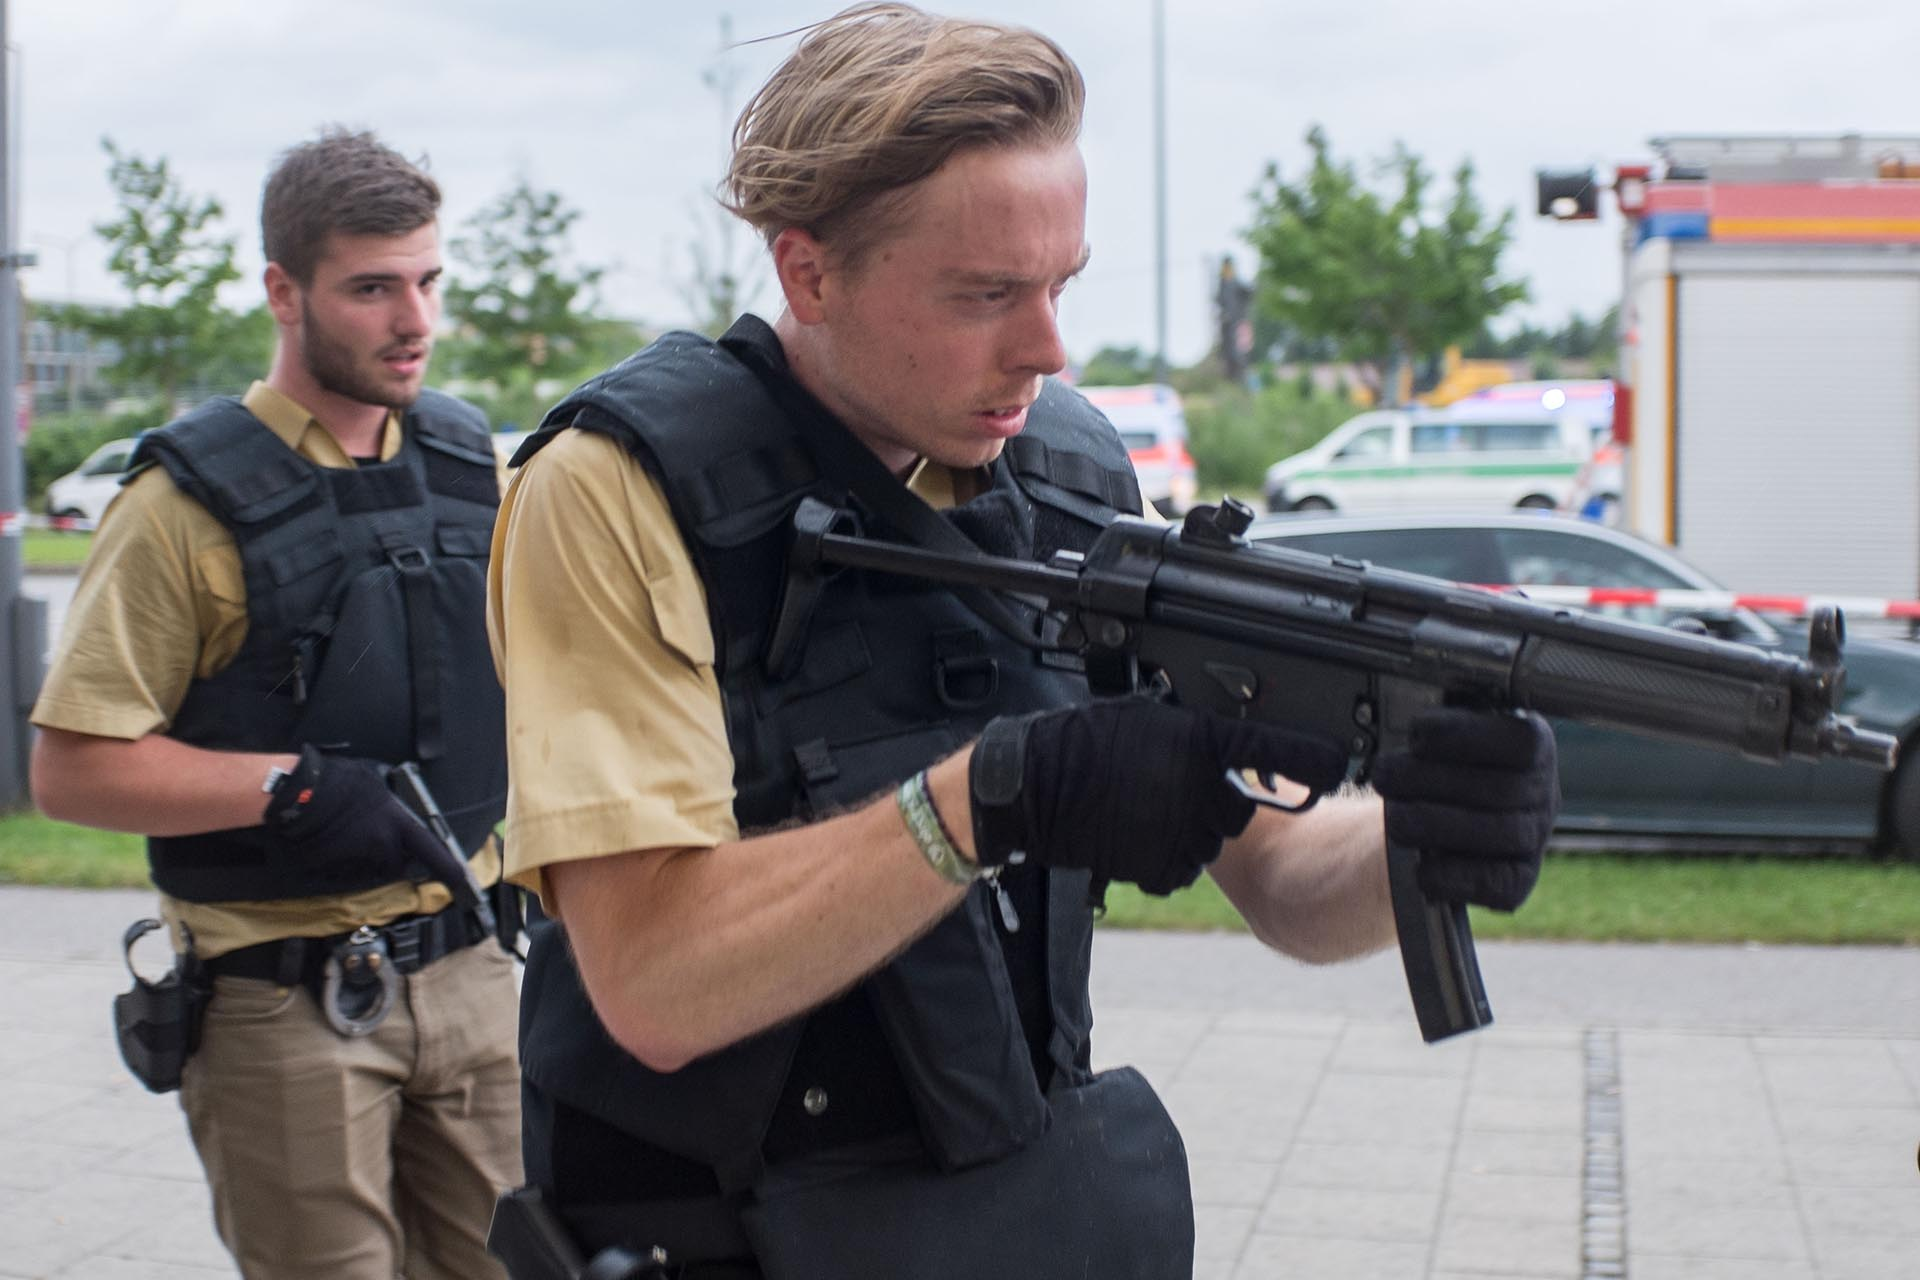 Armed policemen arrive at a shopping centre in which a shooting was reported in Munich, southern Germany, Friday, July 22, 2016. Situation after a shooting in the Olympia shopping centre in Munich is unclear. (Matthias Balk/dpa via AP)